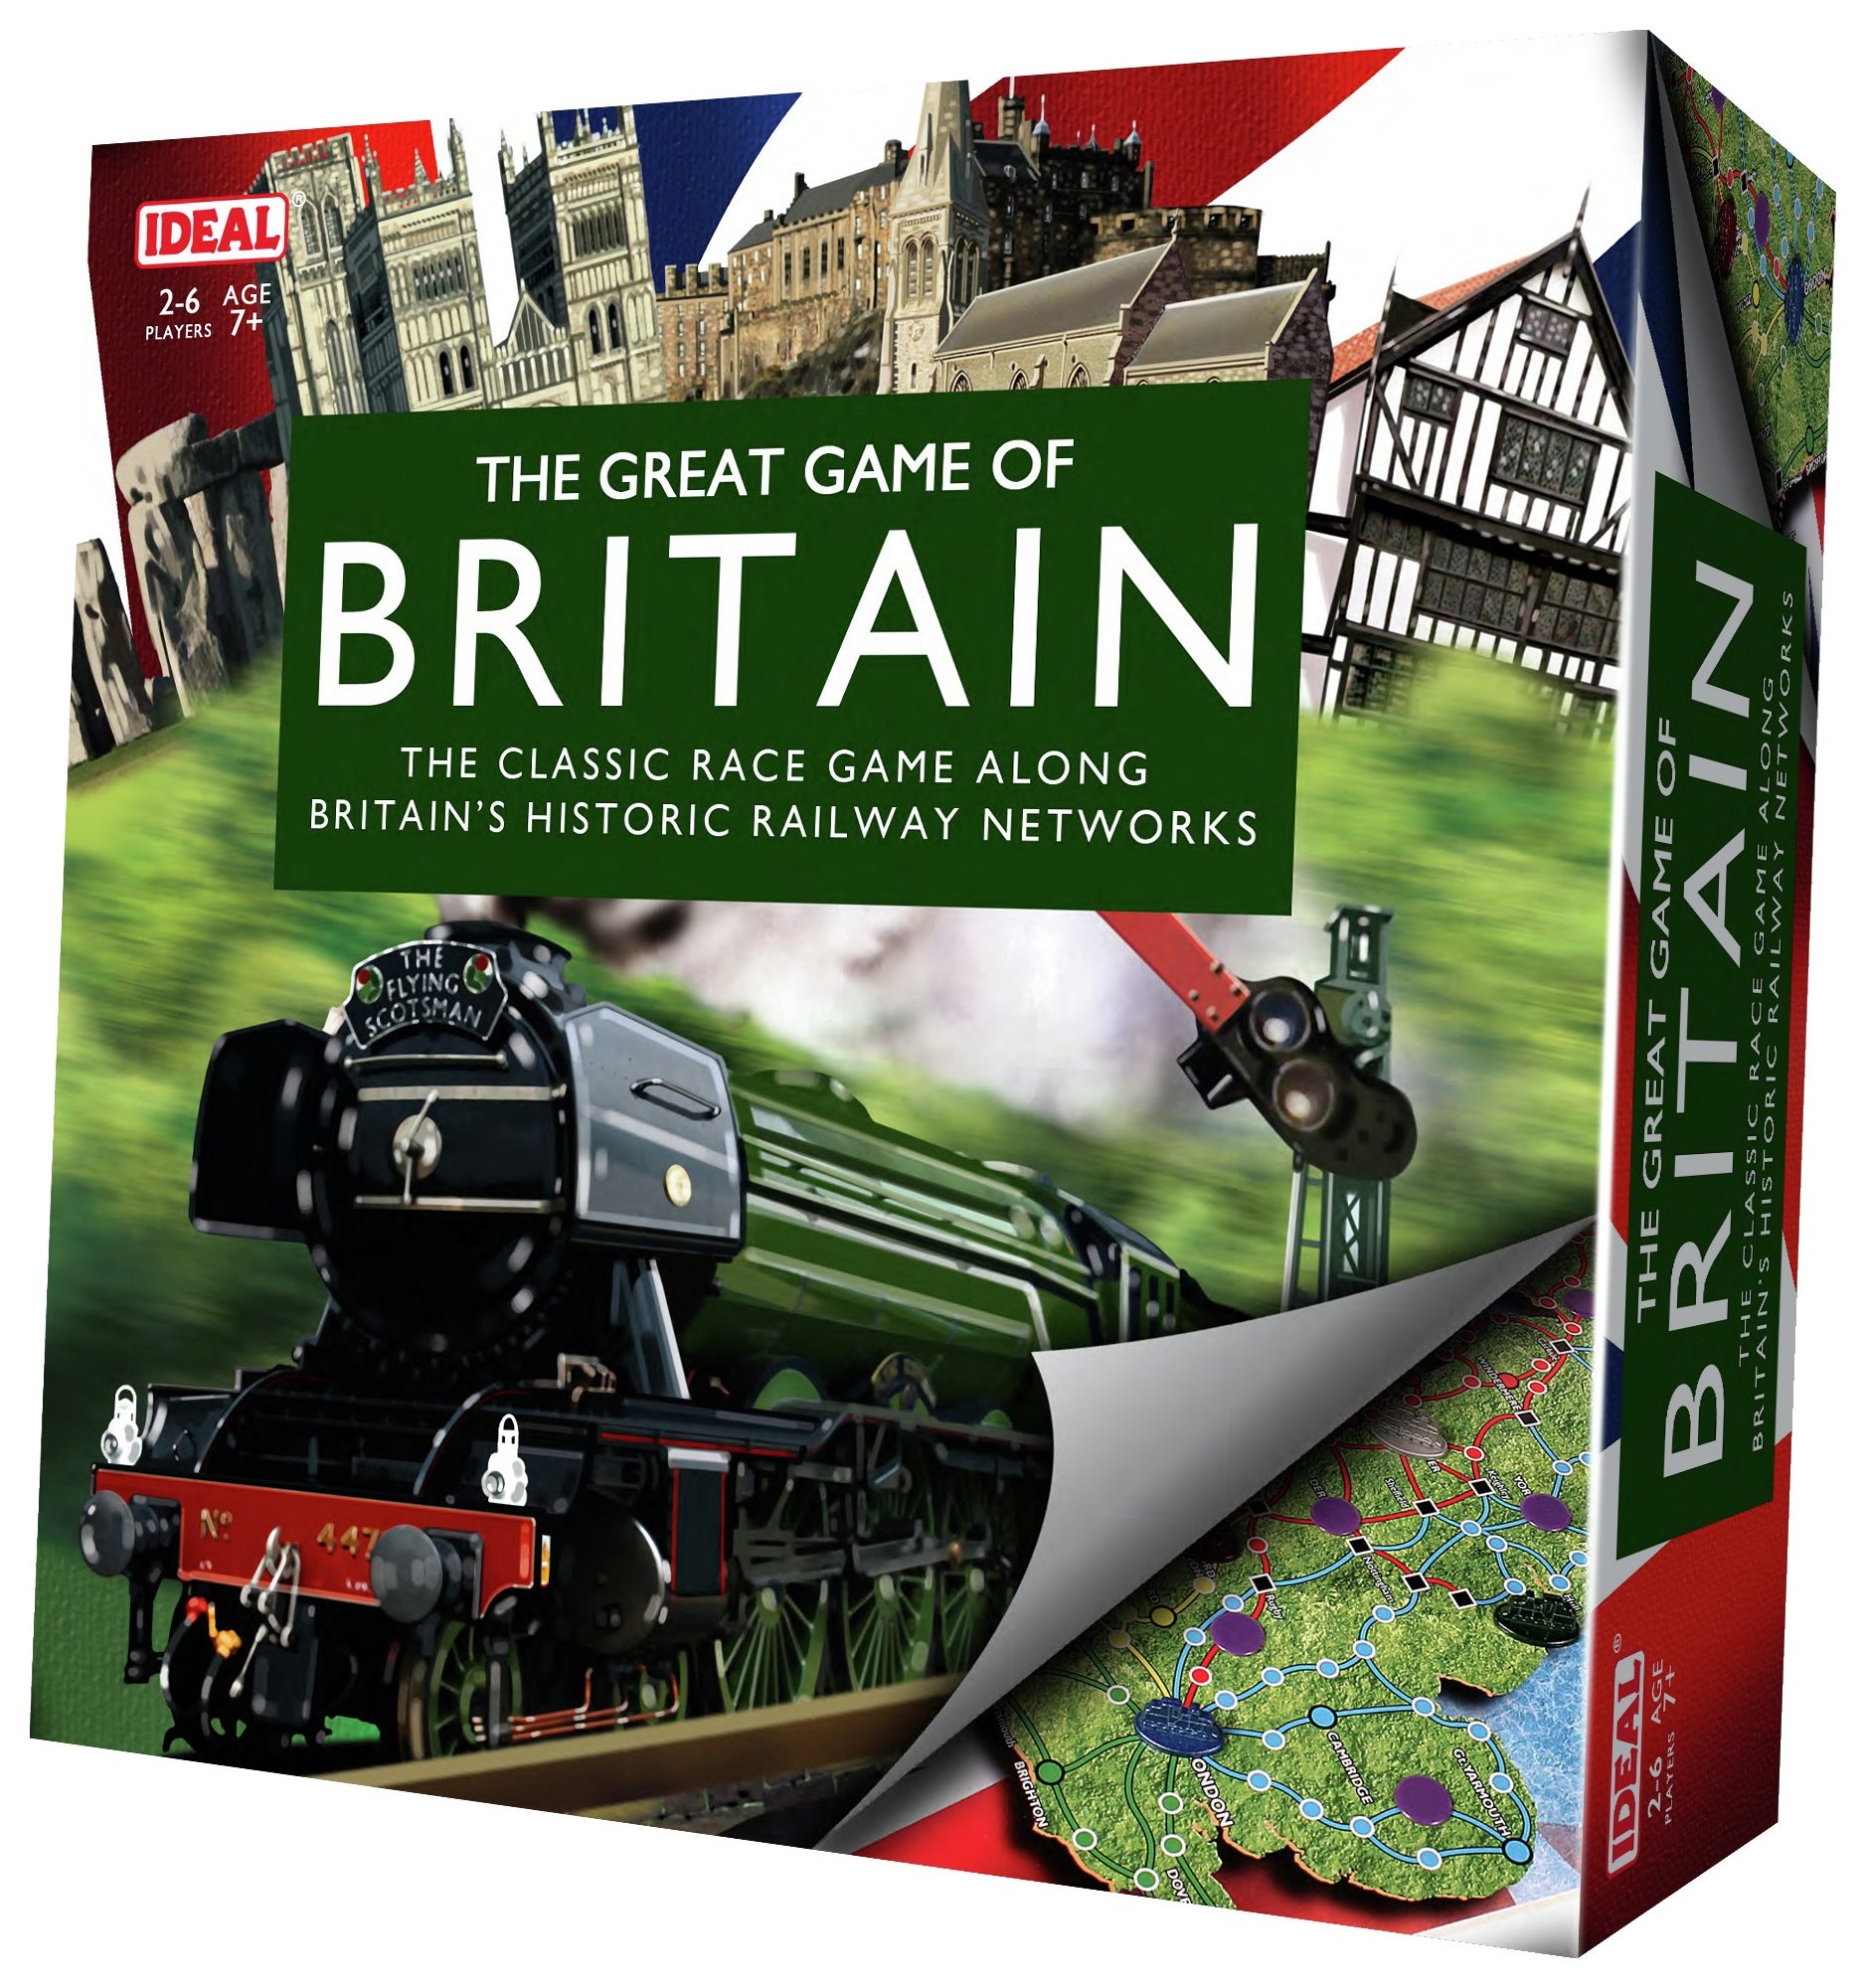 Ideal The Great Game of Britain.